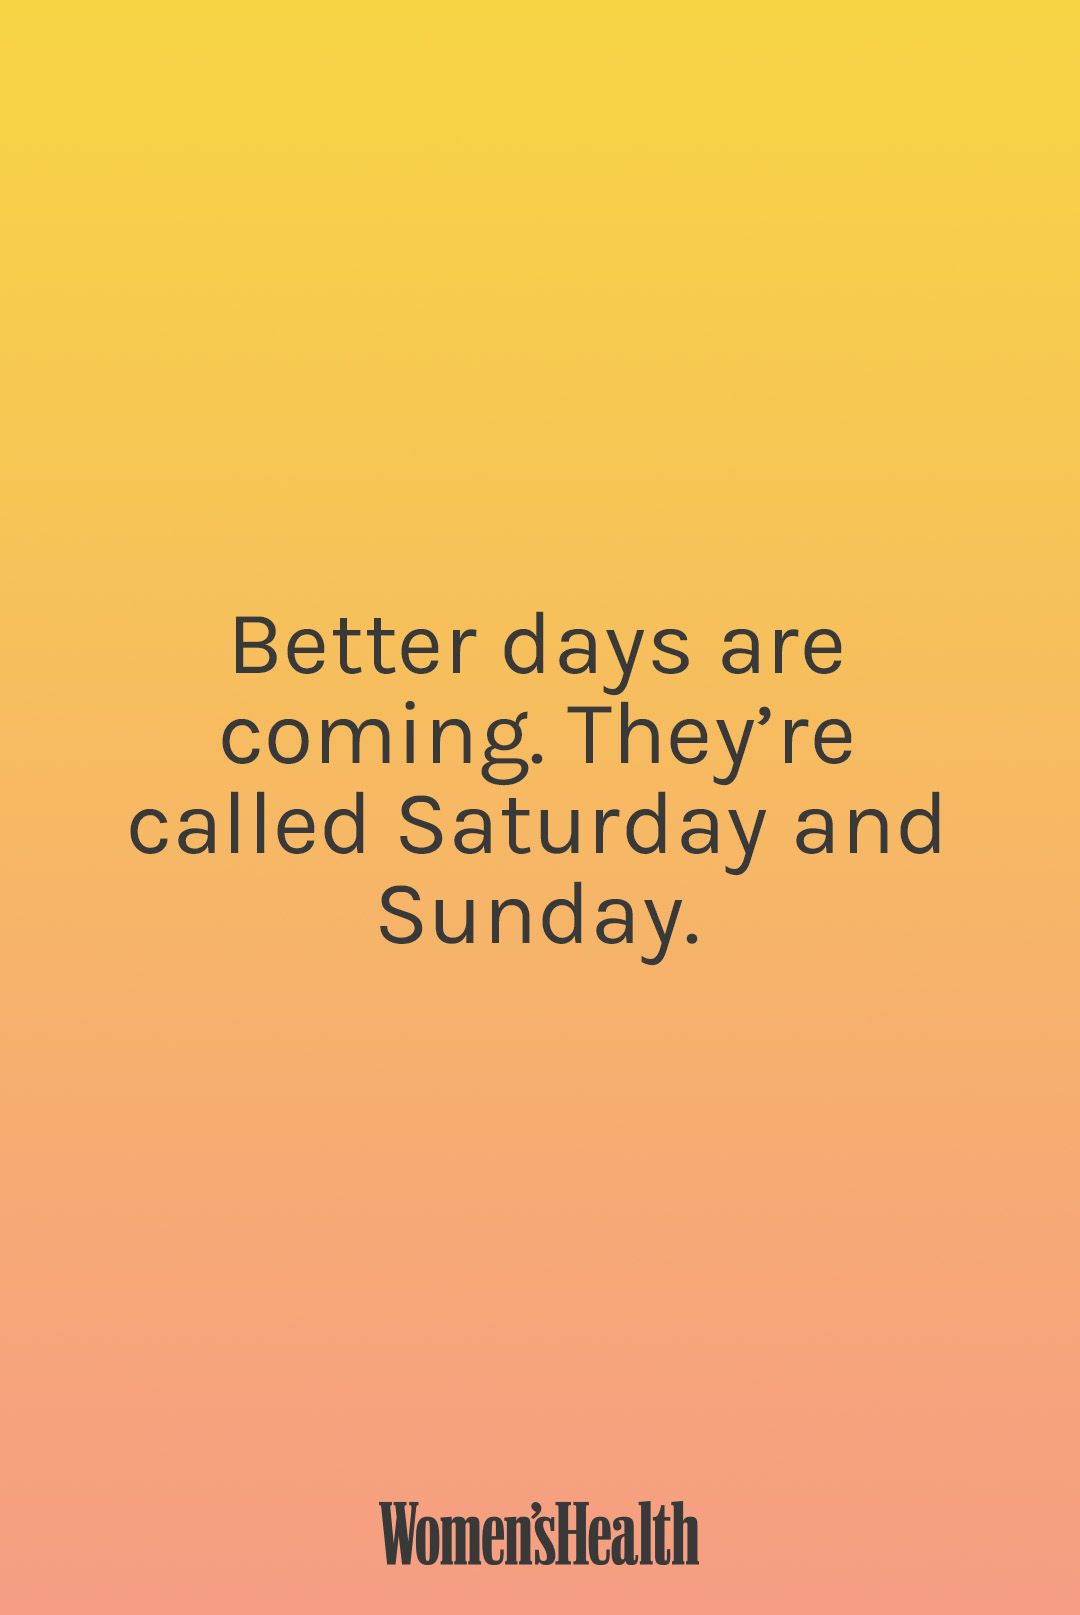 Best Two Days Of The Week Funny Quotes Better Days Are Coming Words